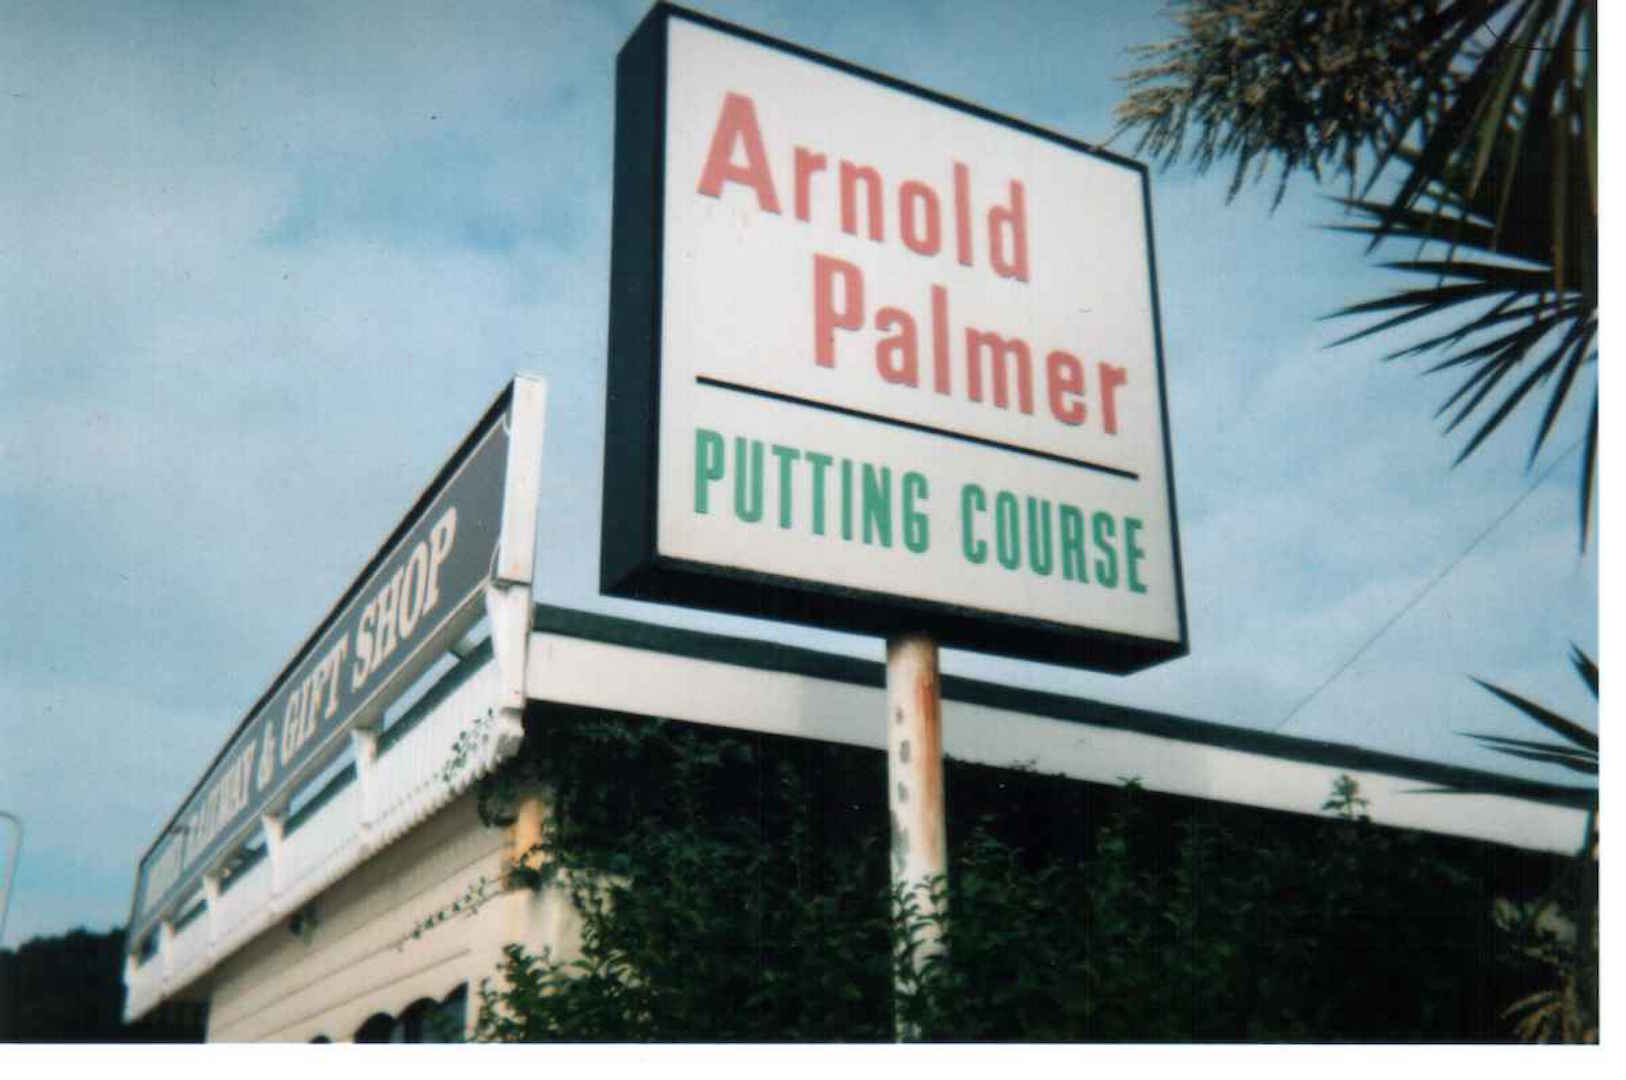 Arnold Palmer Putting course closes